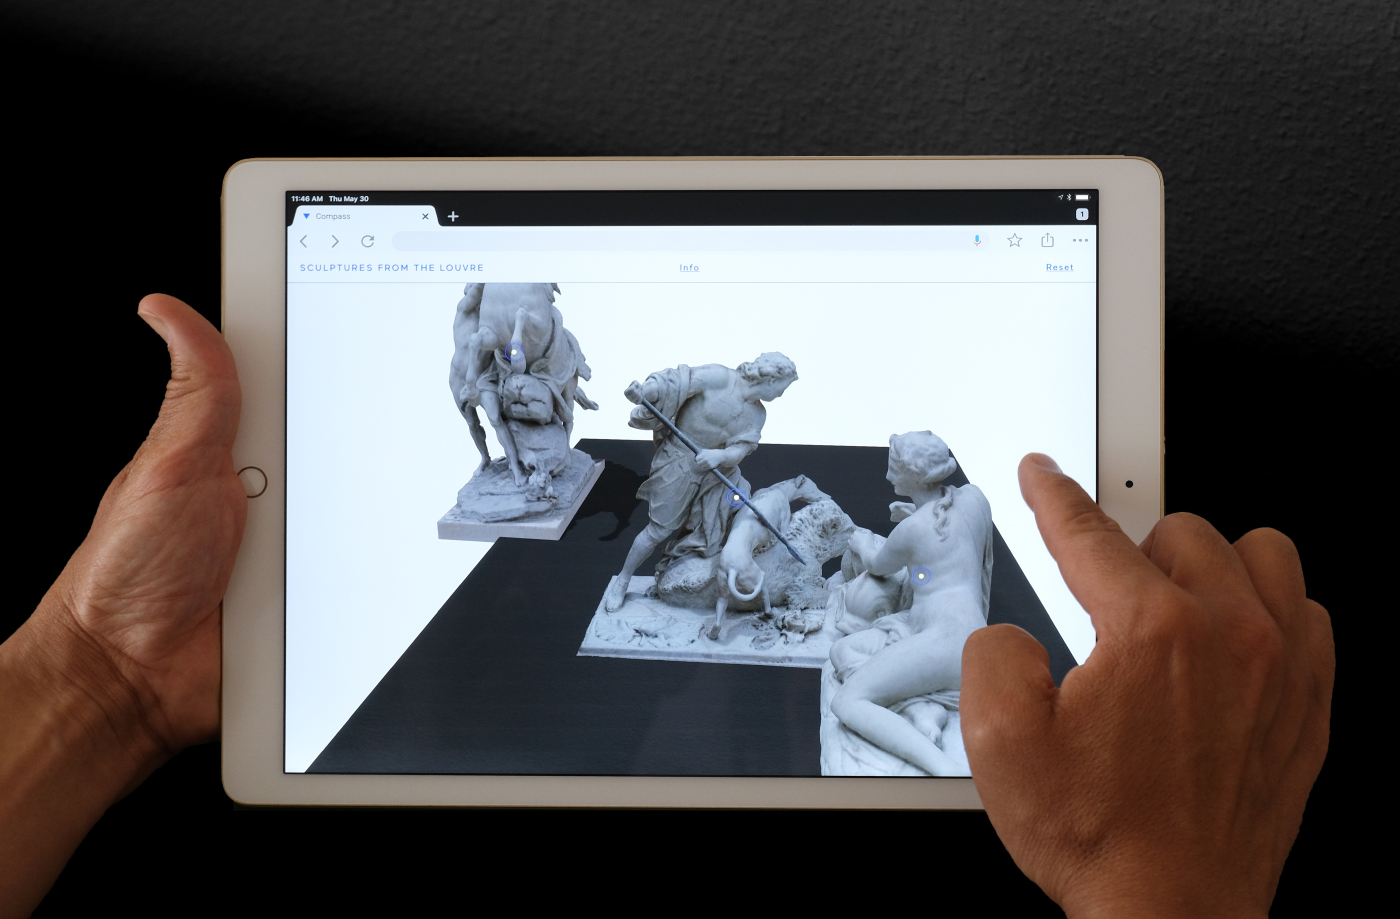 An iPad displaying figurative sculptures which are being dragged around.